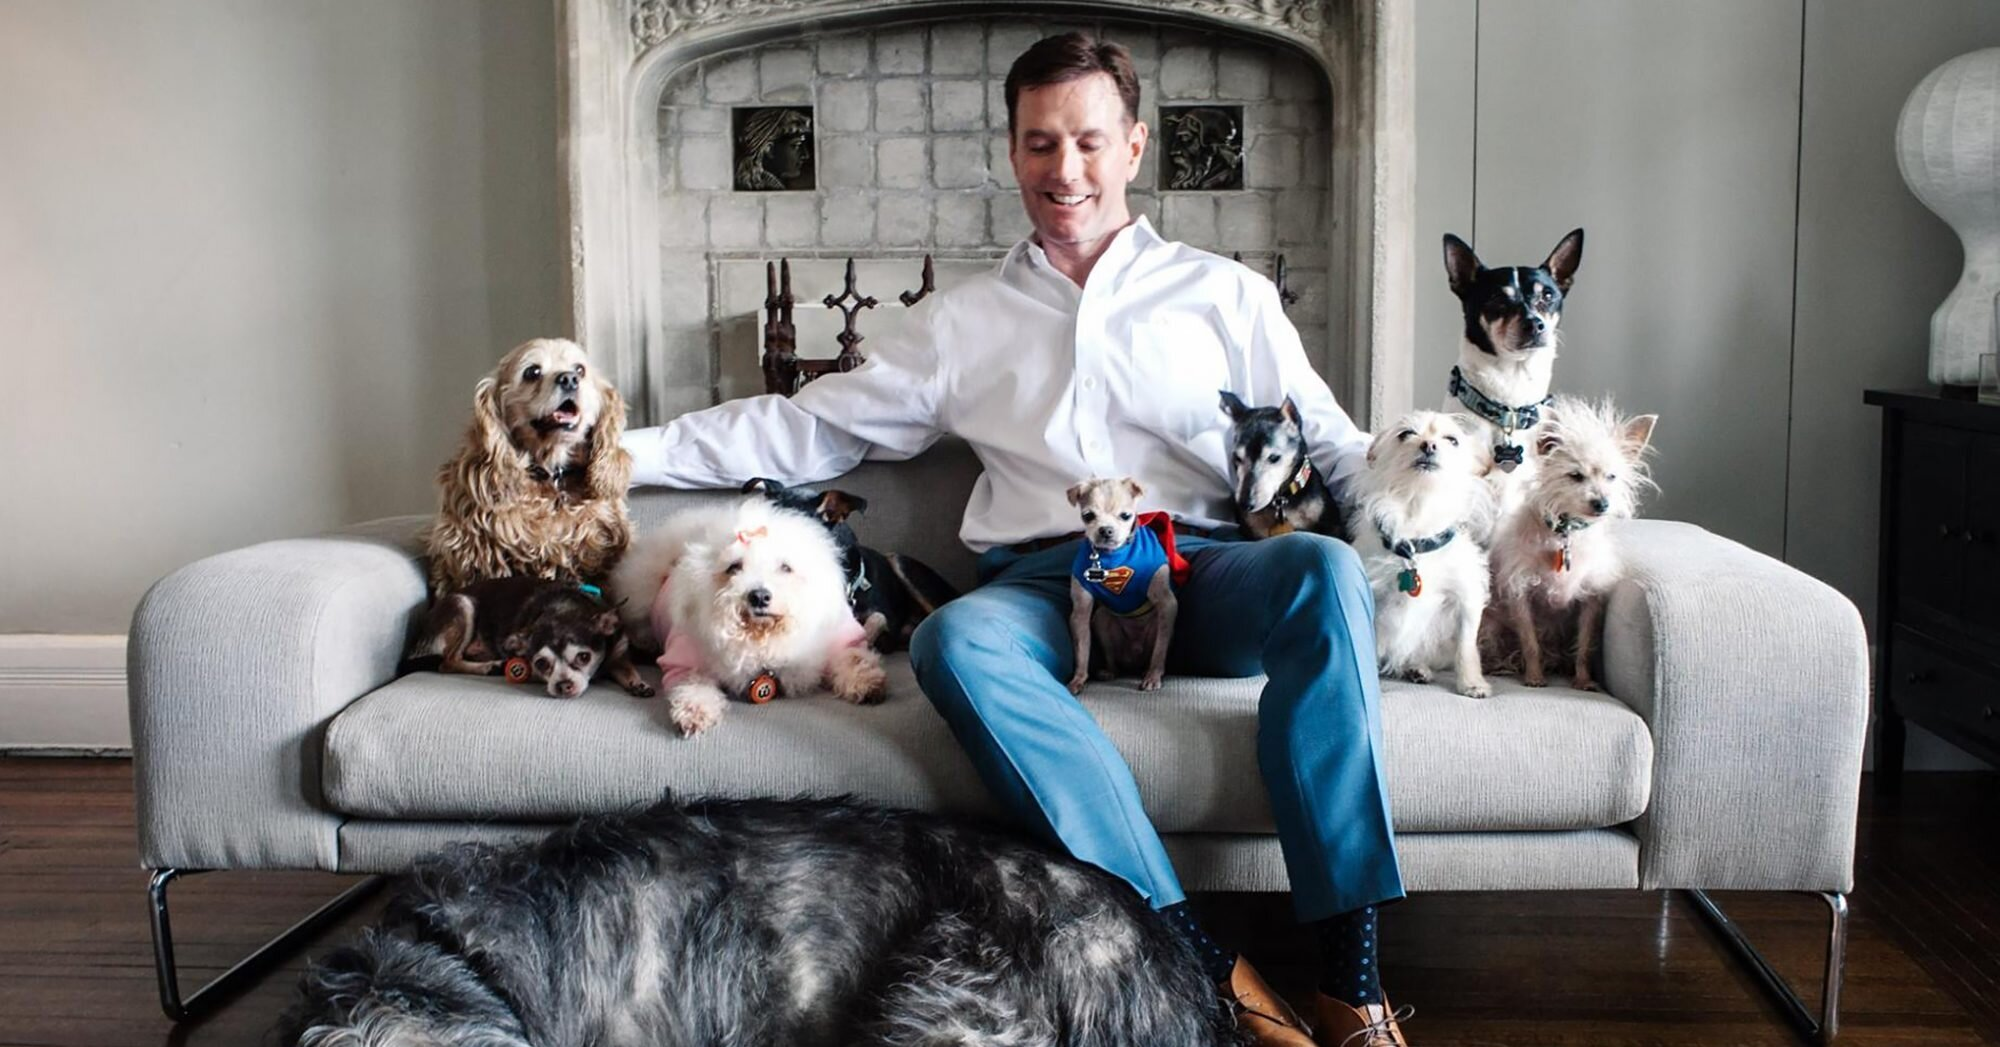 This Accountant Takes in Dogs No One Else Wants